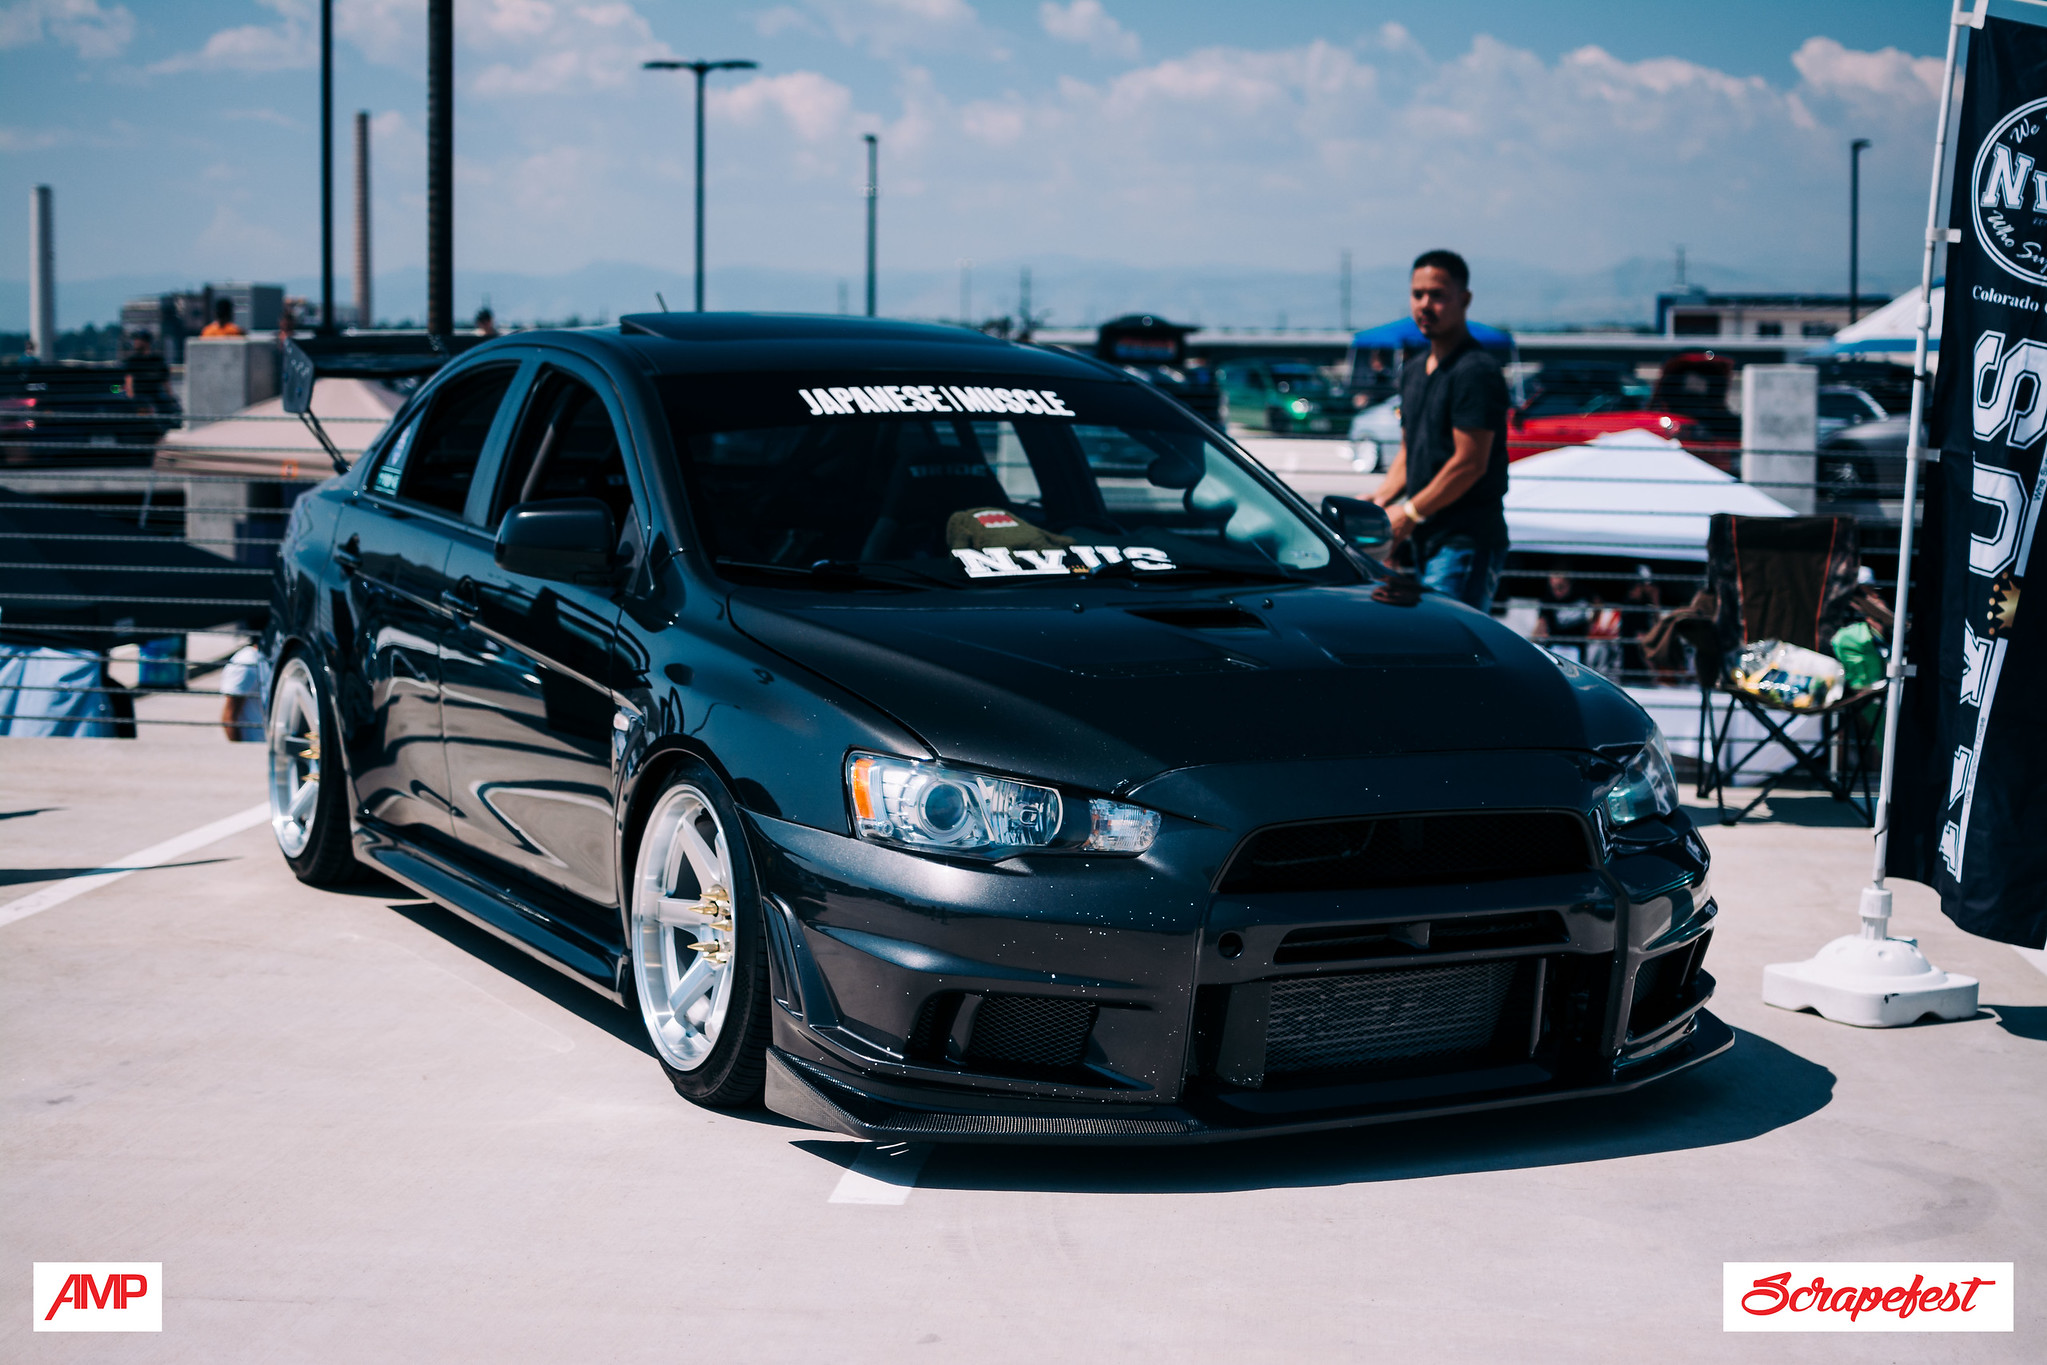 Axel Dominick Howard 2011 Mitsubishi Lancer Evolution TBGLIVE5